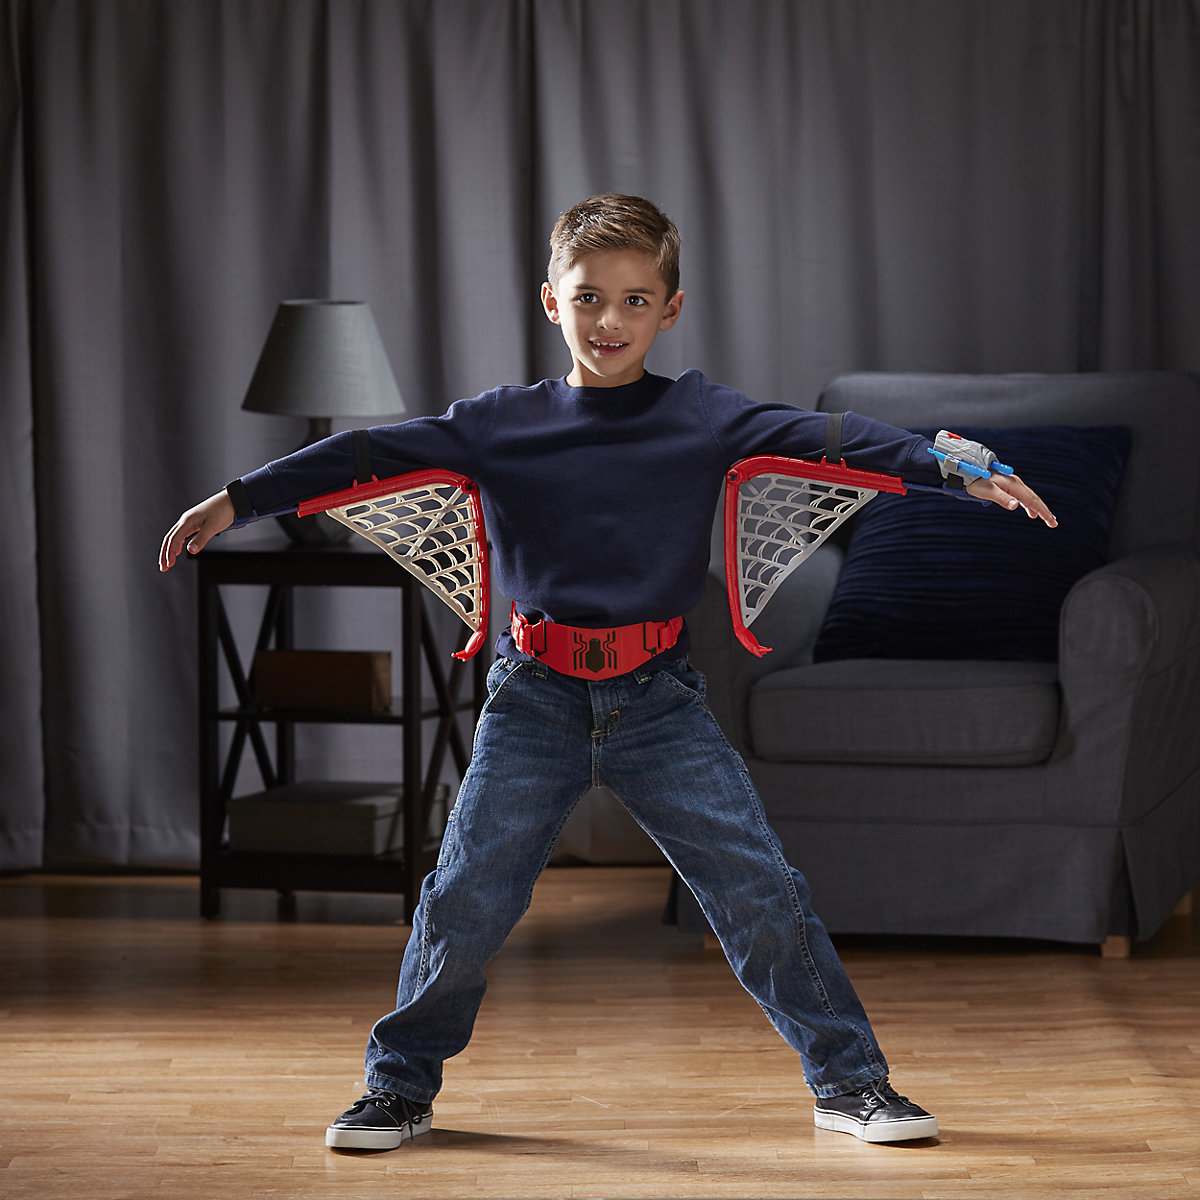 Фото - Hasbro  Costume Props 5104324 playsets childrens costumes aprilpromo Avengers Marvel Spider Man dvotinst baby photography props wooden posing bed fotografia accessories infant toddler studio shooting photo props shower gift